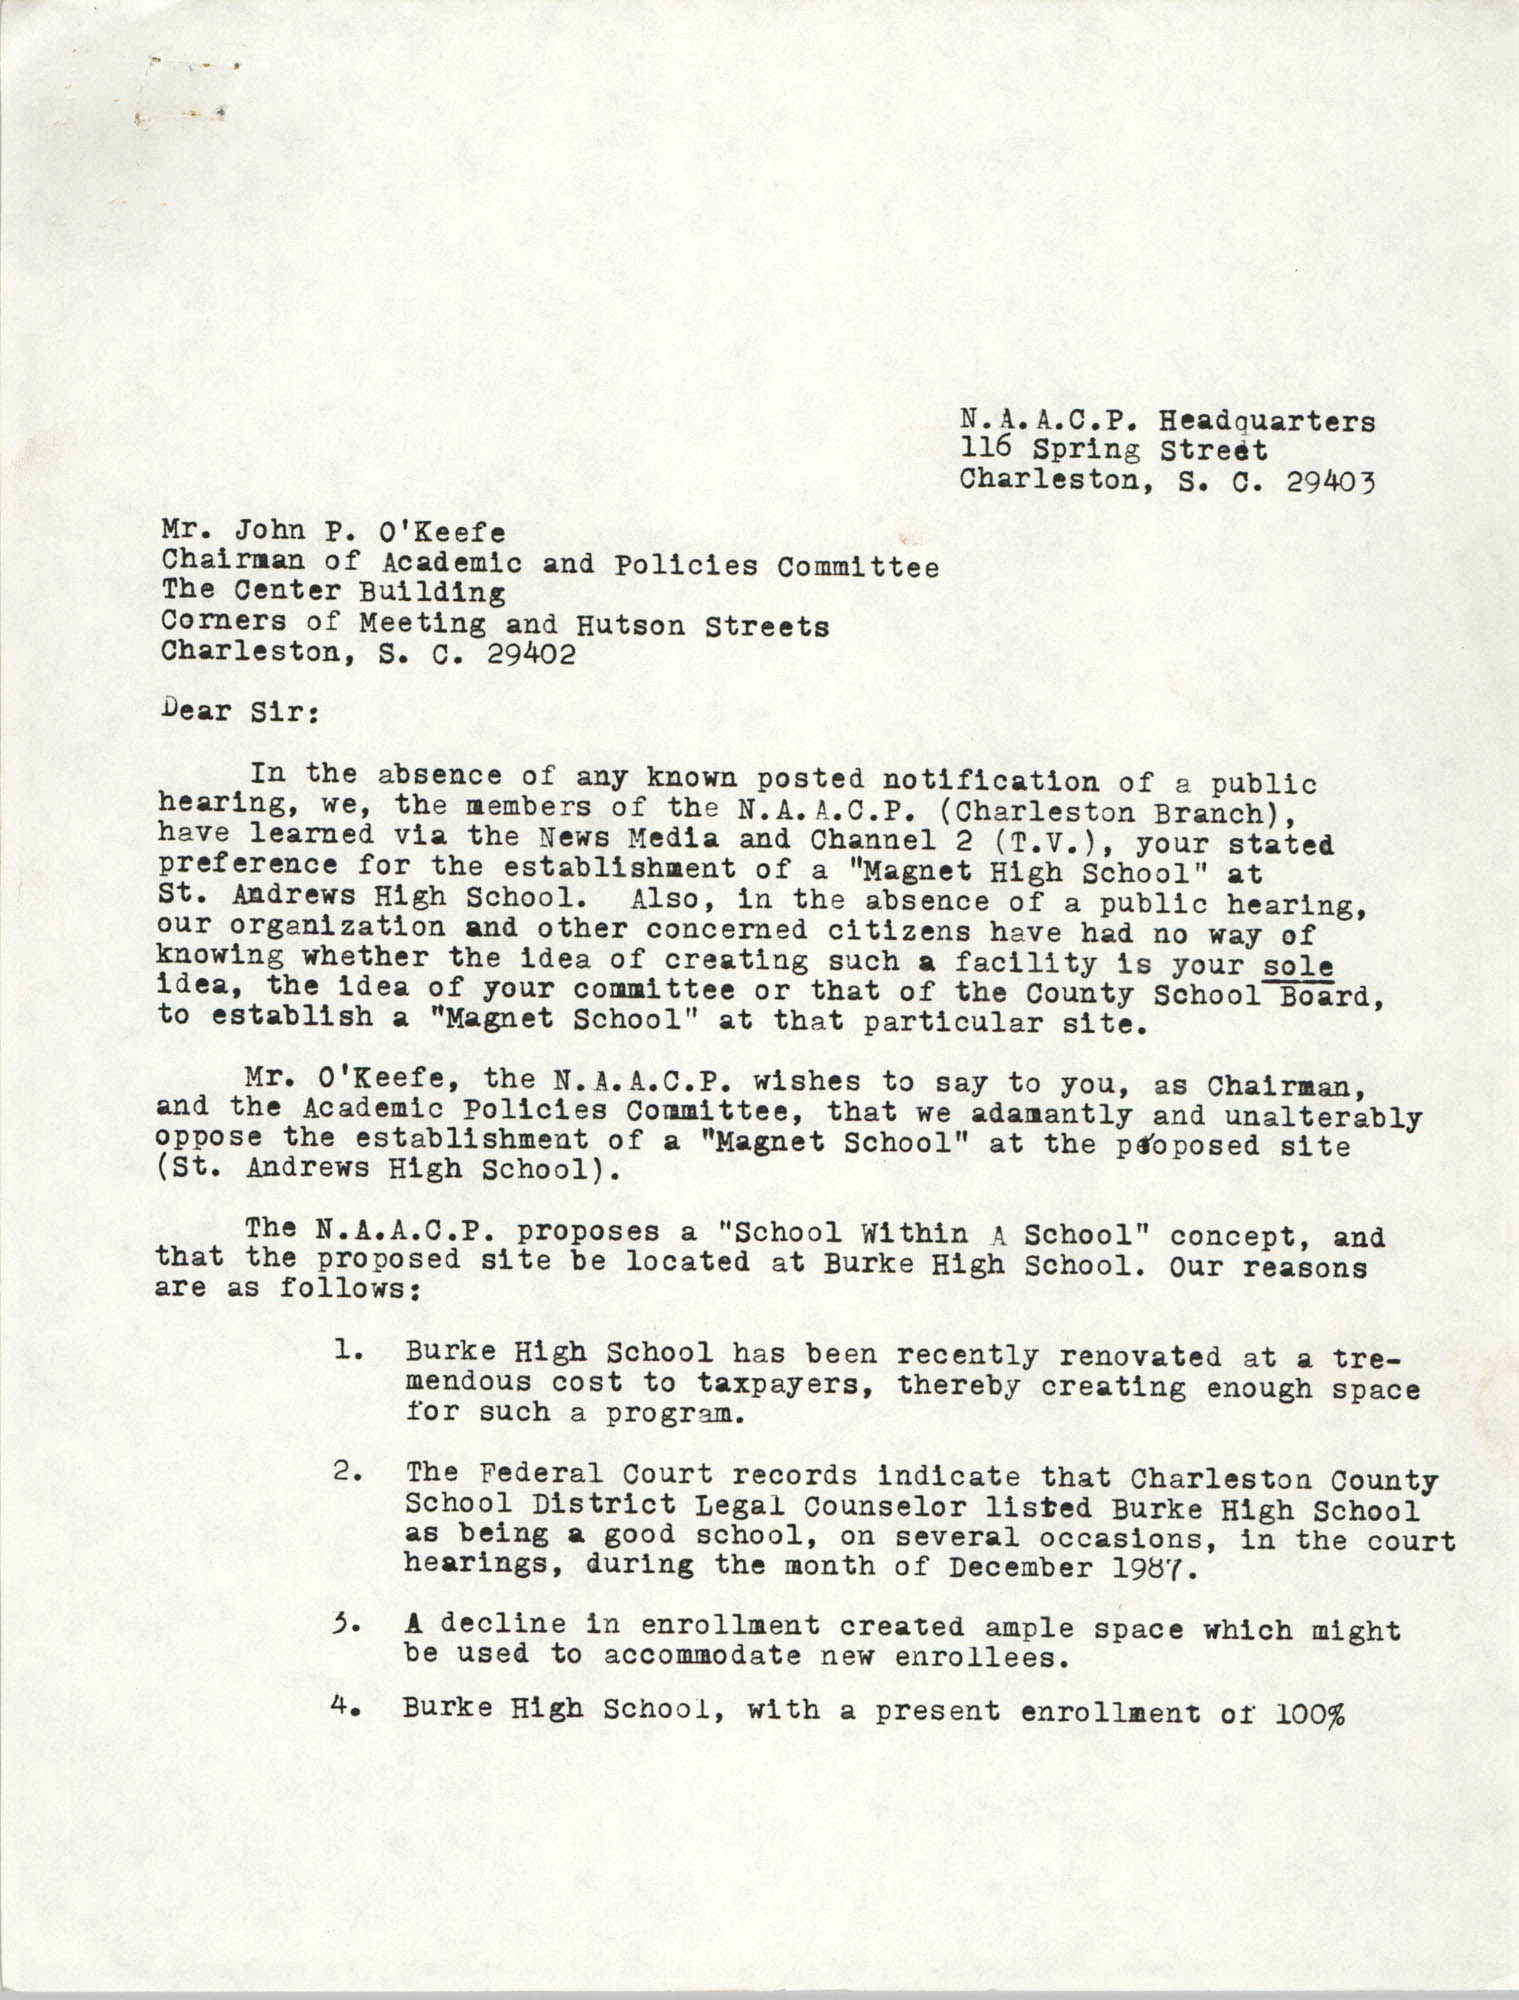 Letter from Joseph G. Thompson and William A. Glover to John P. O'Keefe, 1988